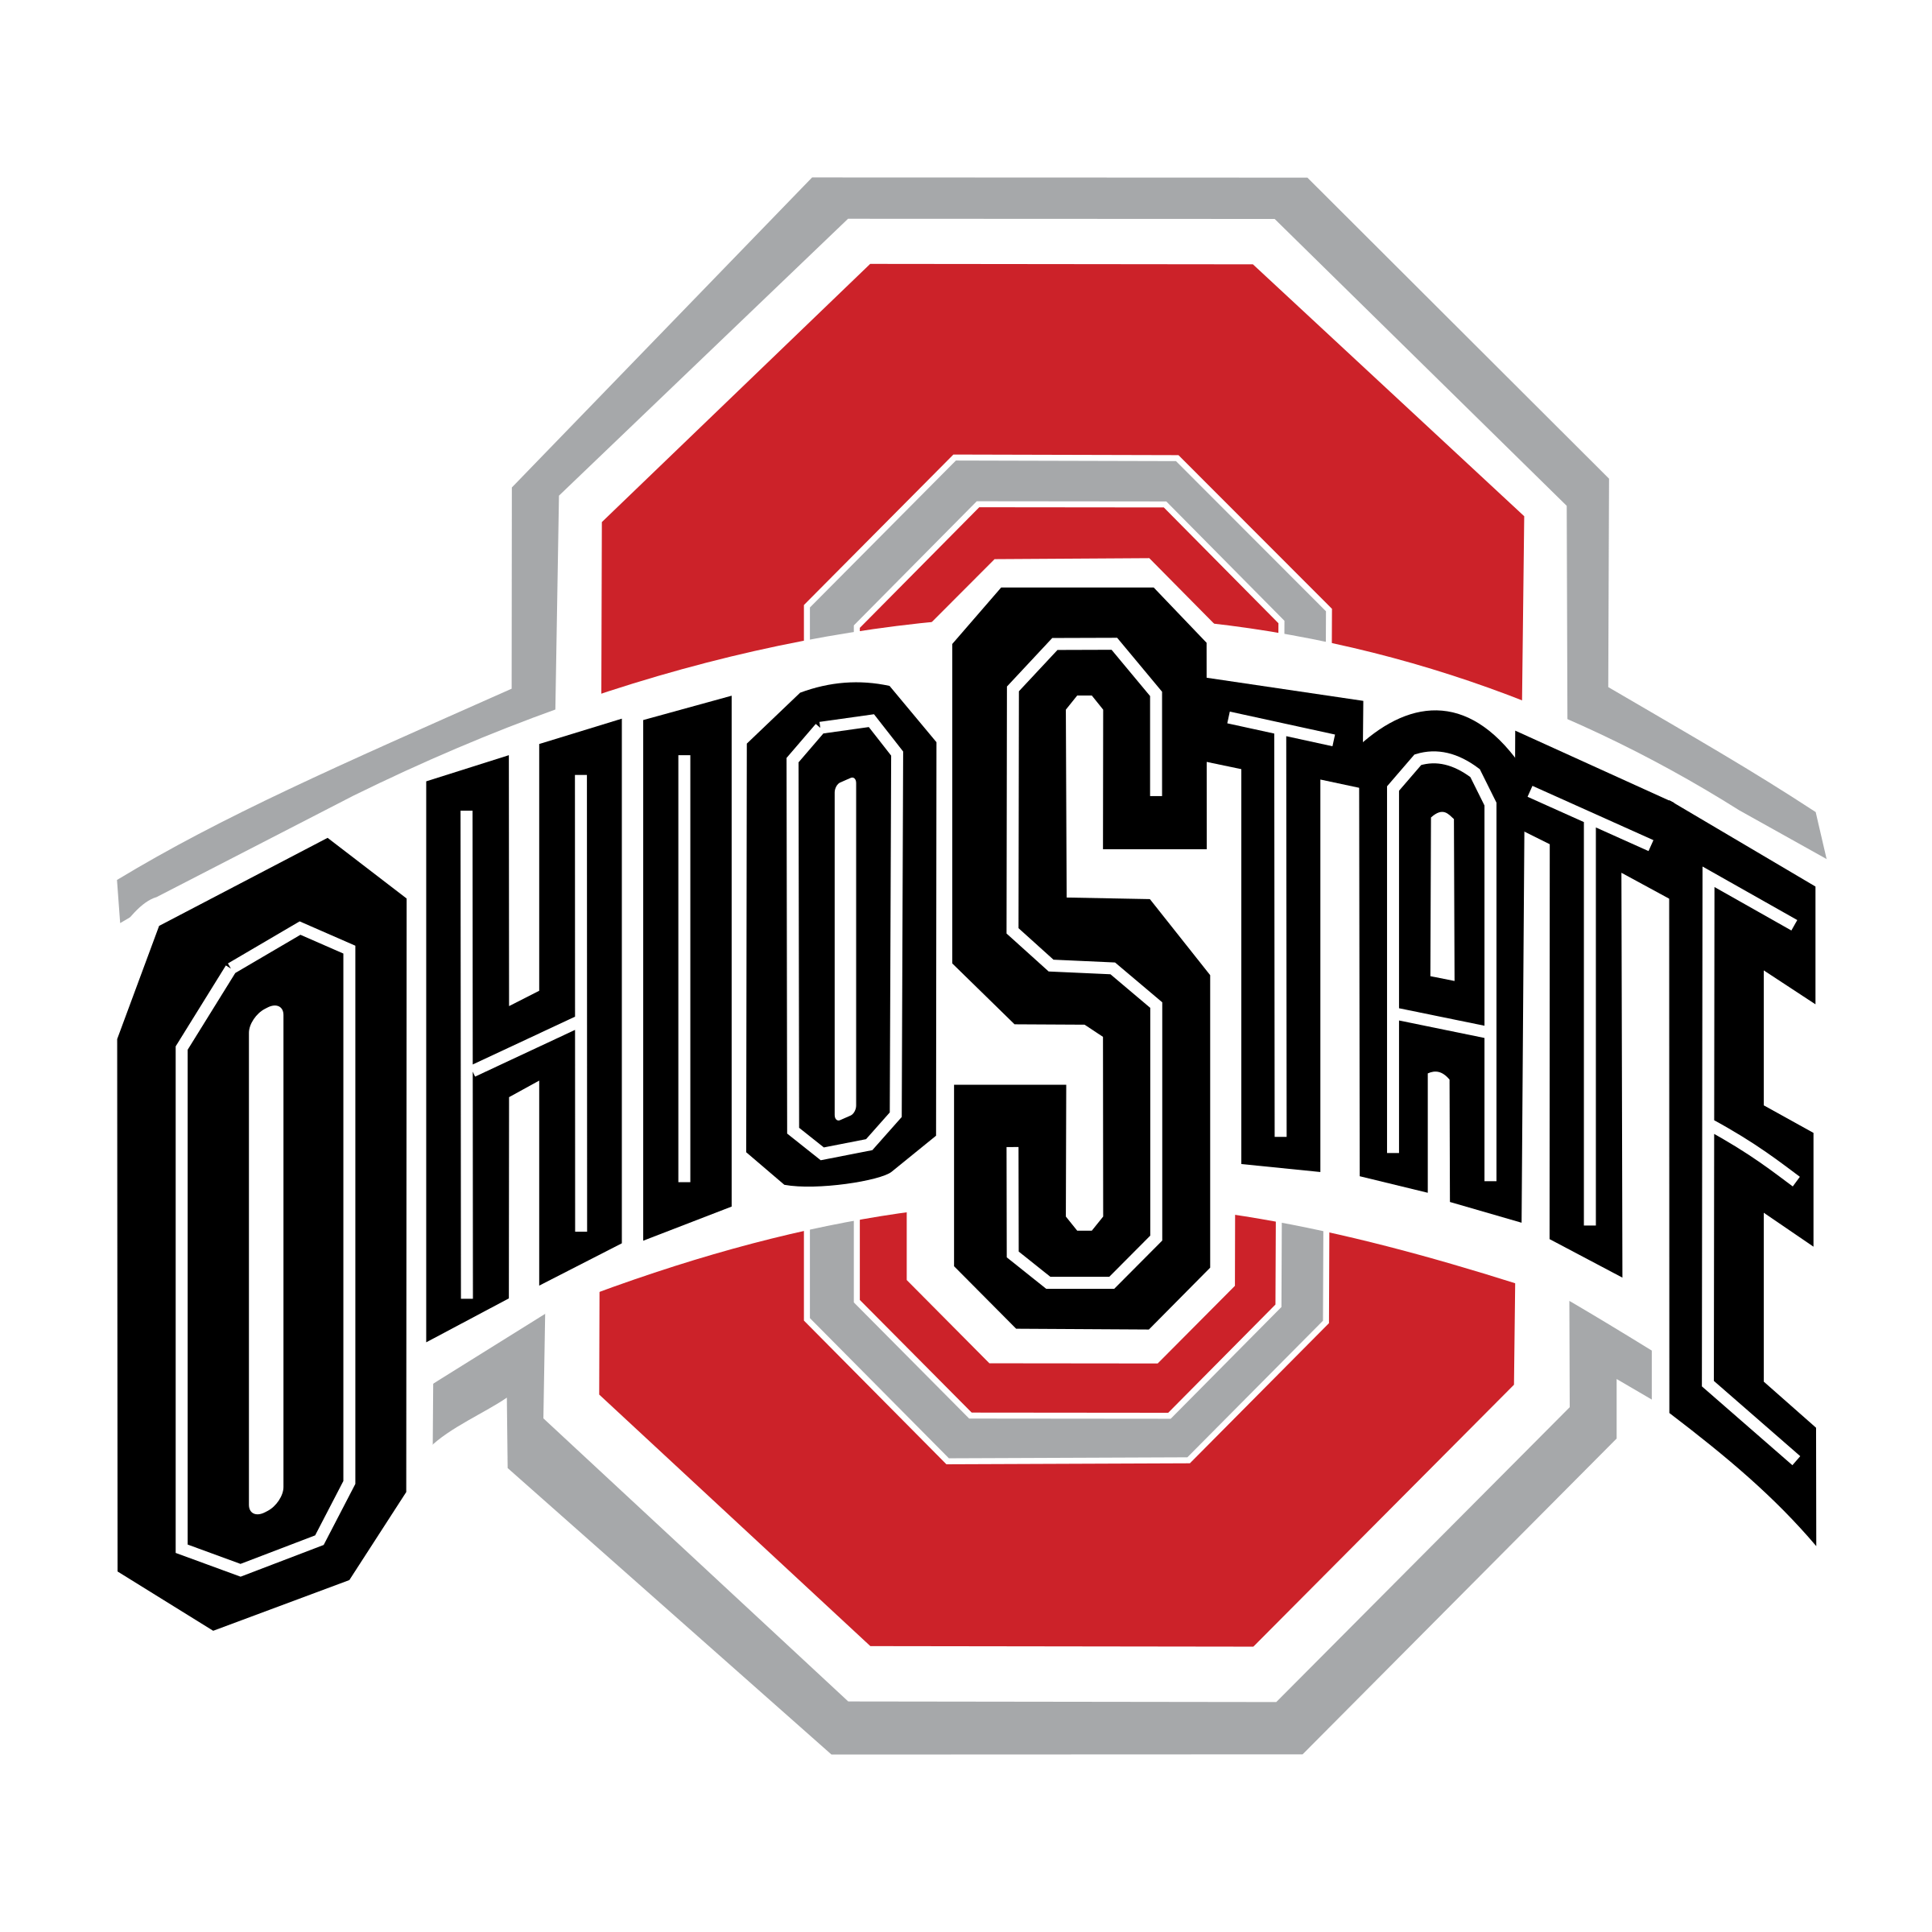 Ohio State Buckeyes Logo PNG Transparent & SVG Vector.